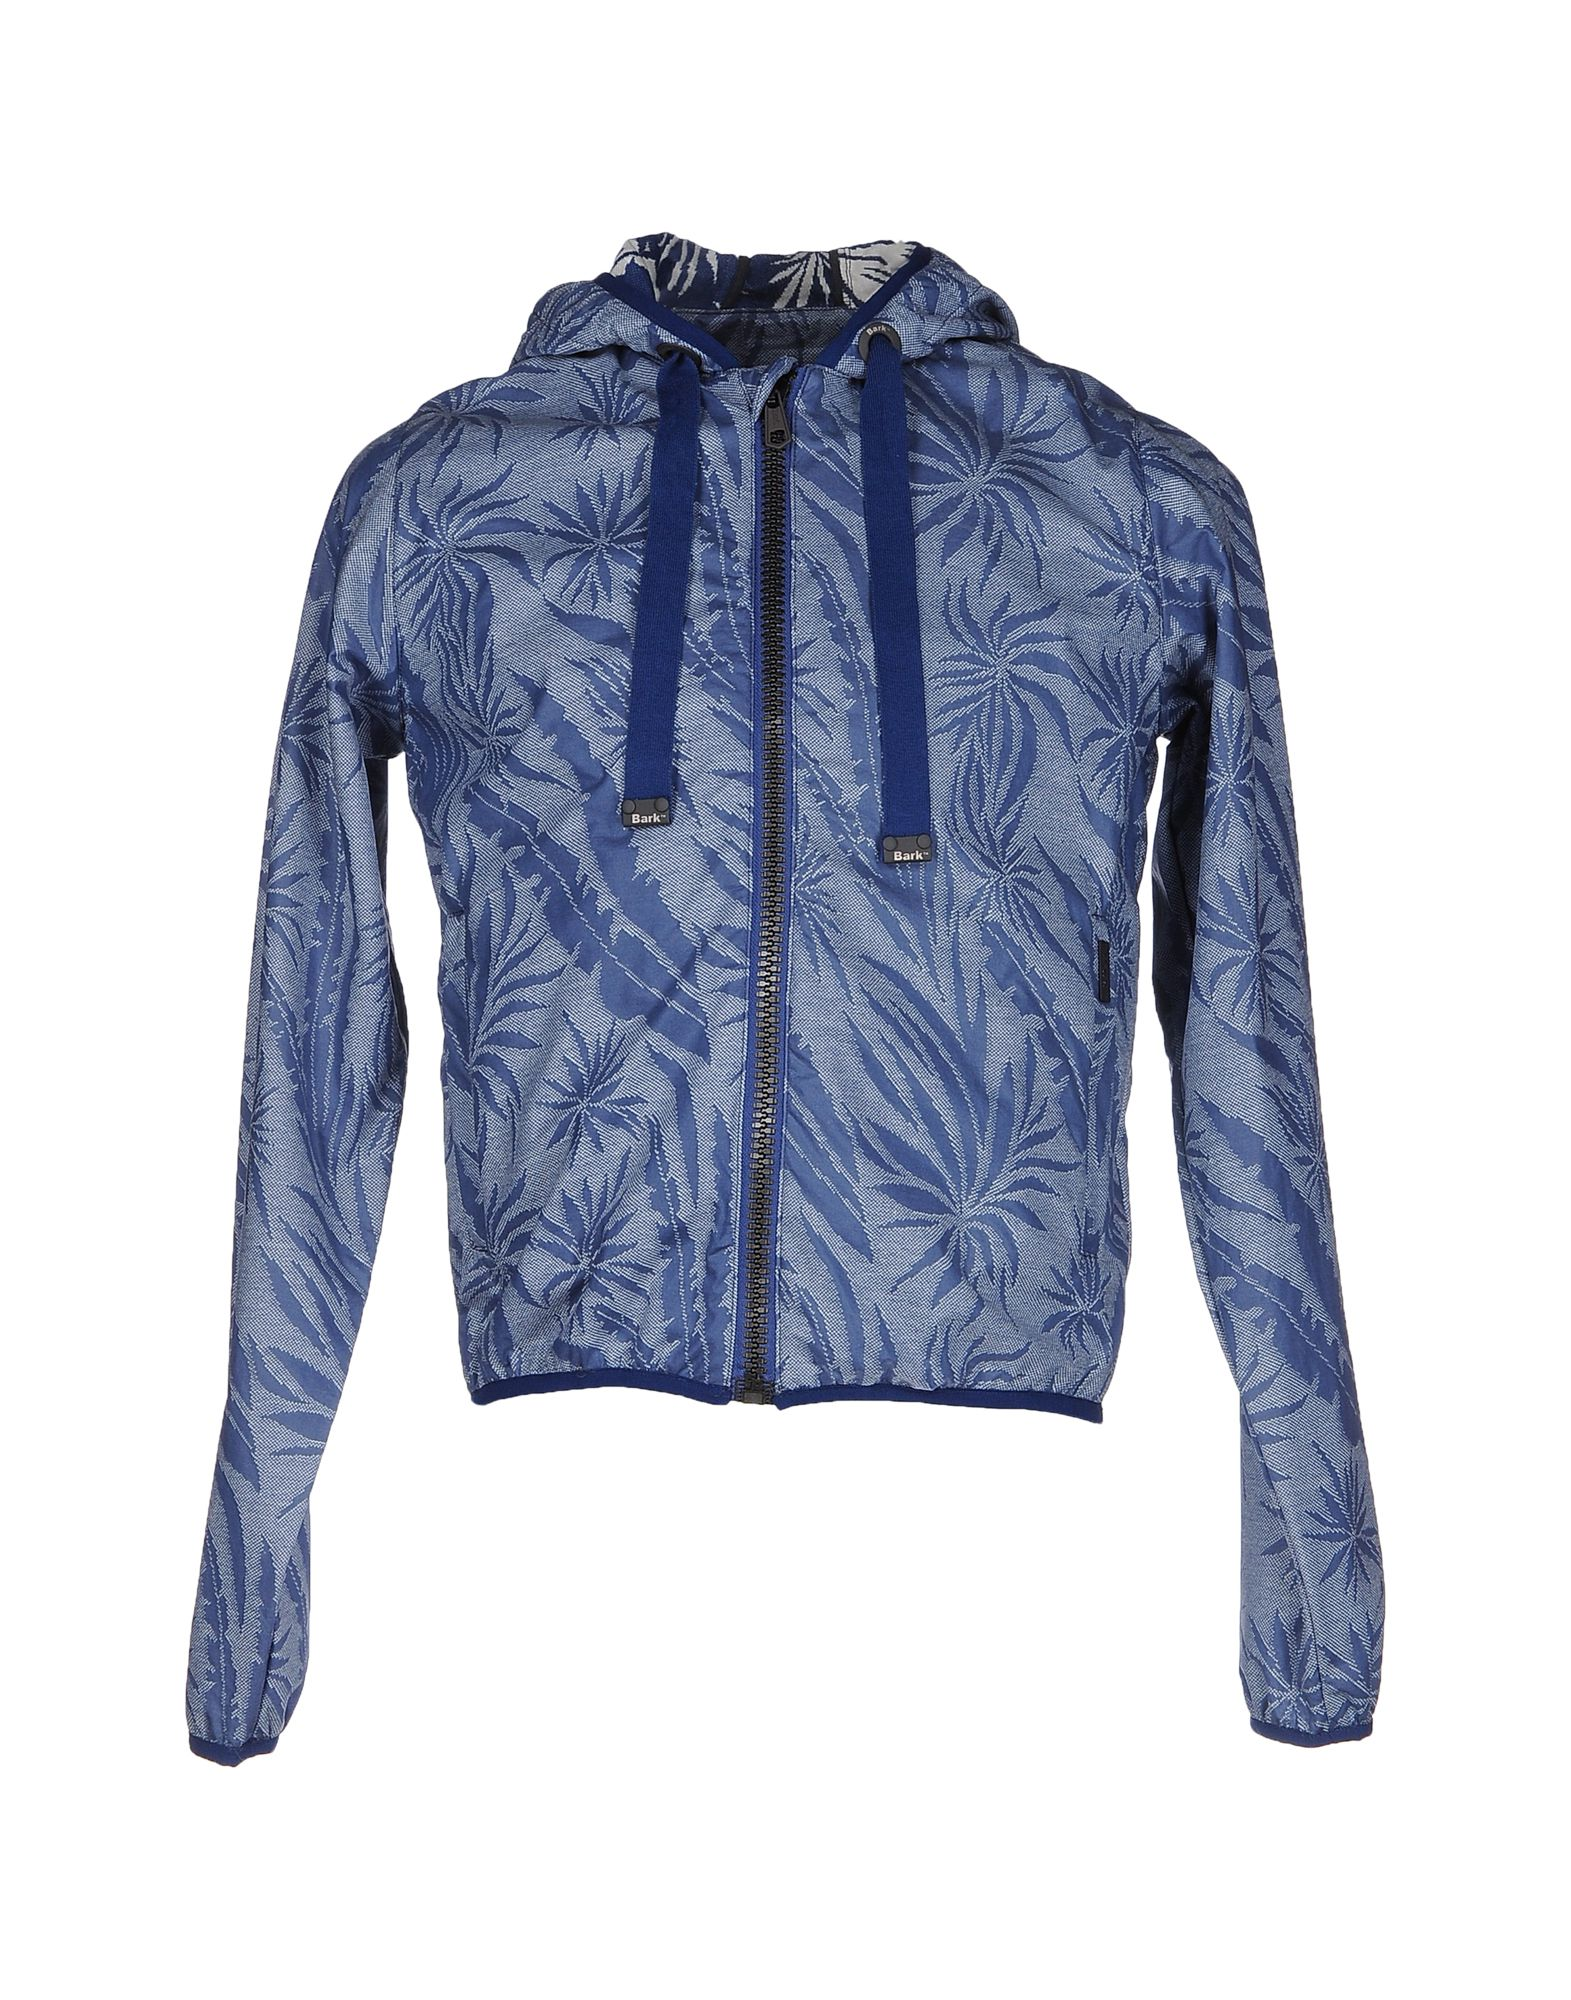 BARK Jacket in Blue